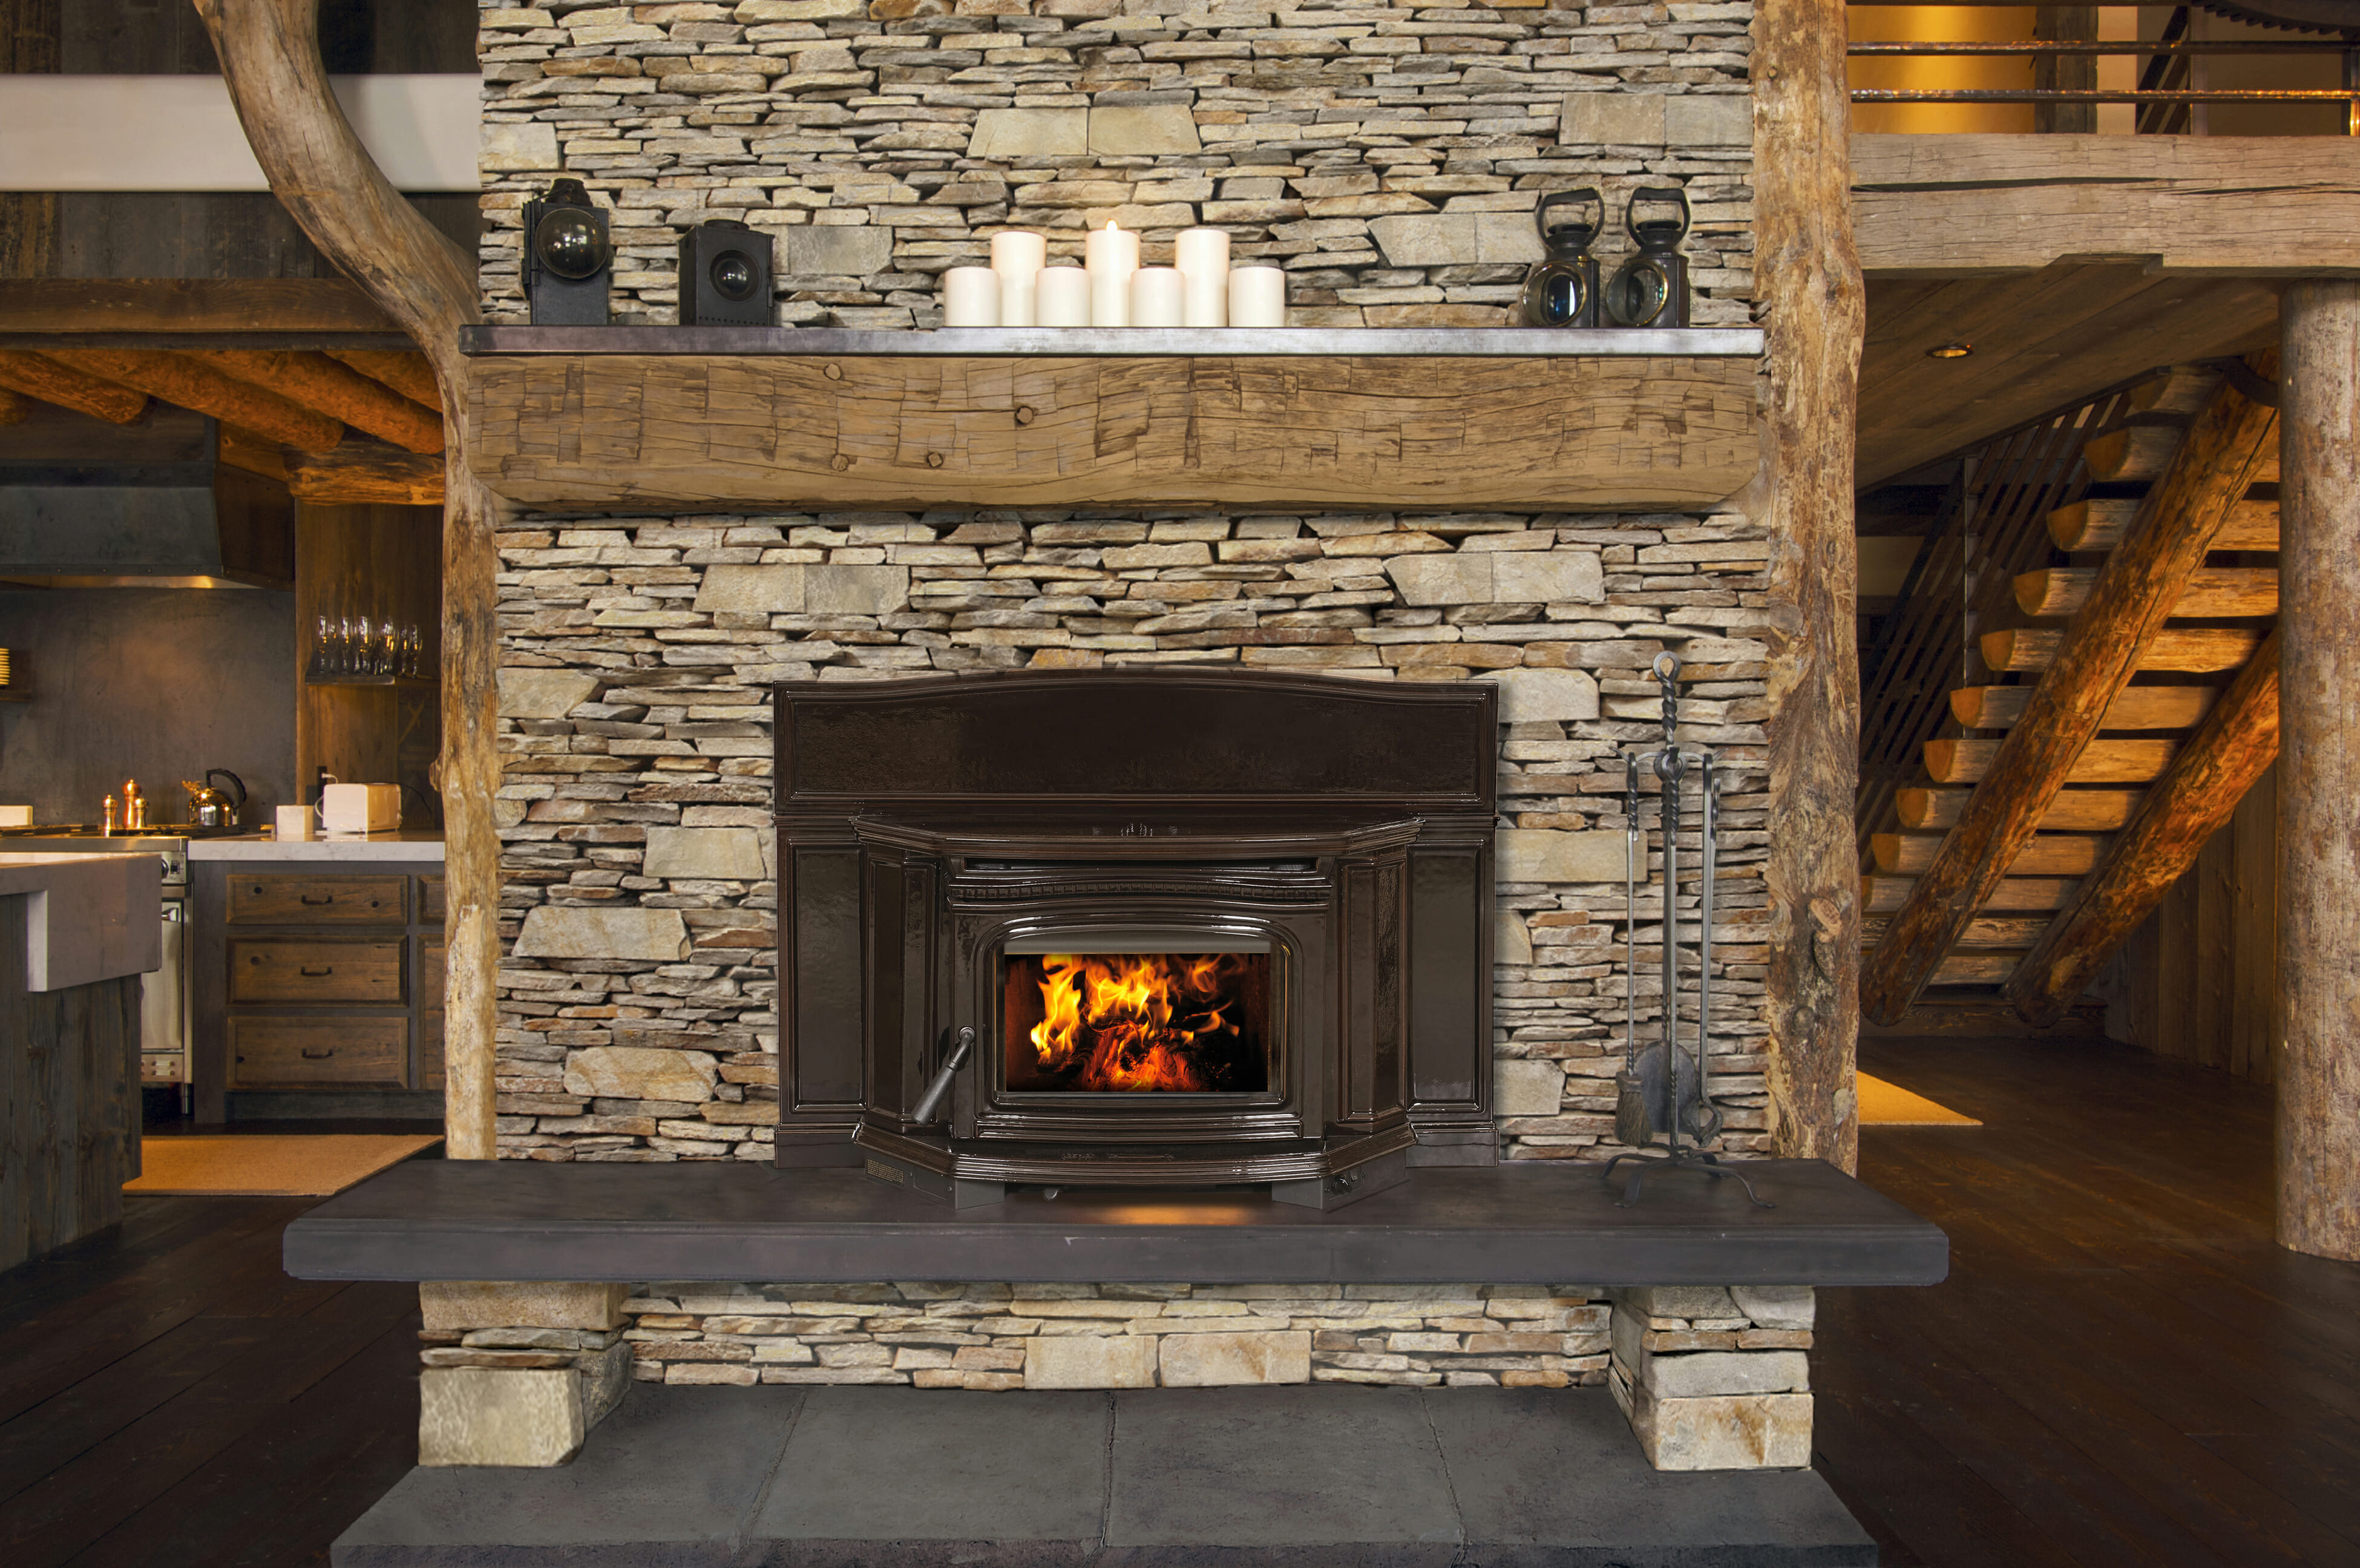 Rustic Fireplace In Log Cabin Edwards And Sons Hearth And Home